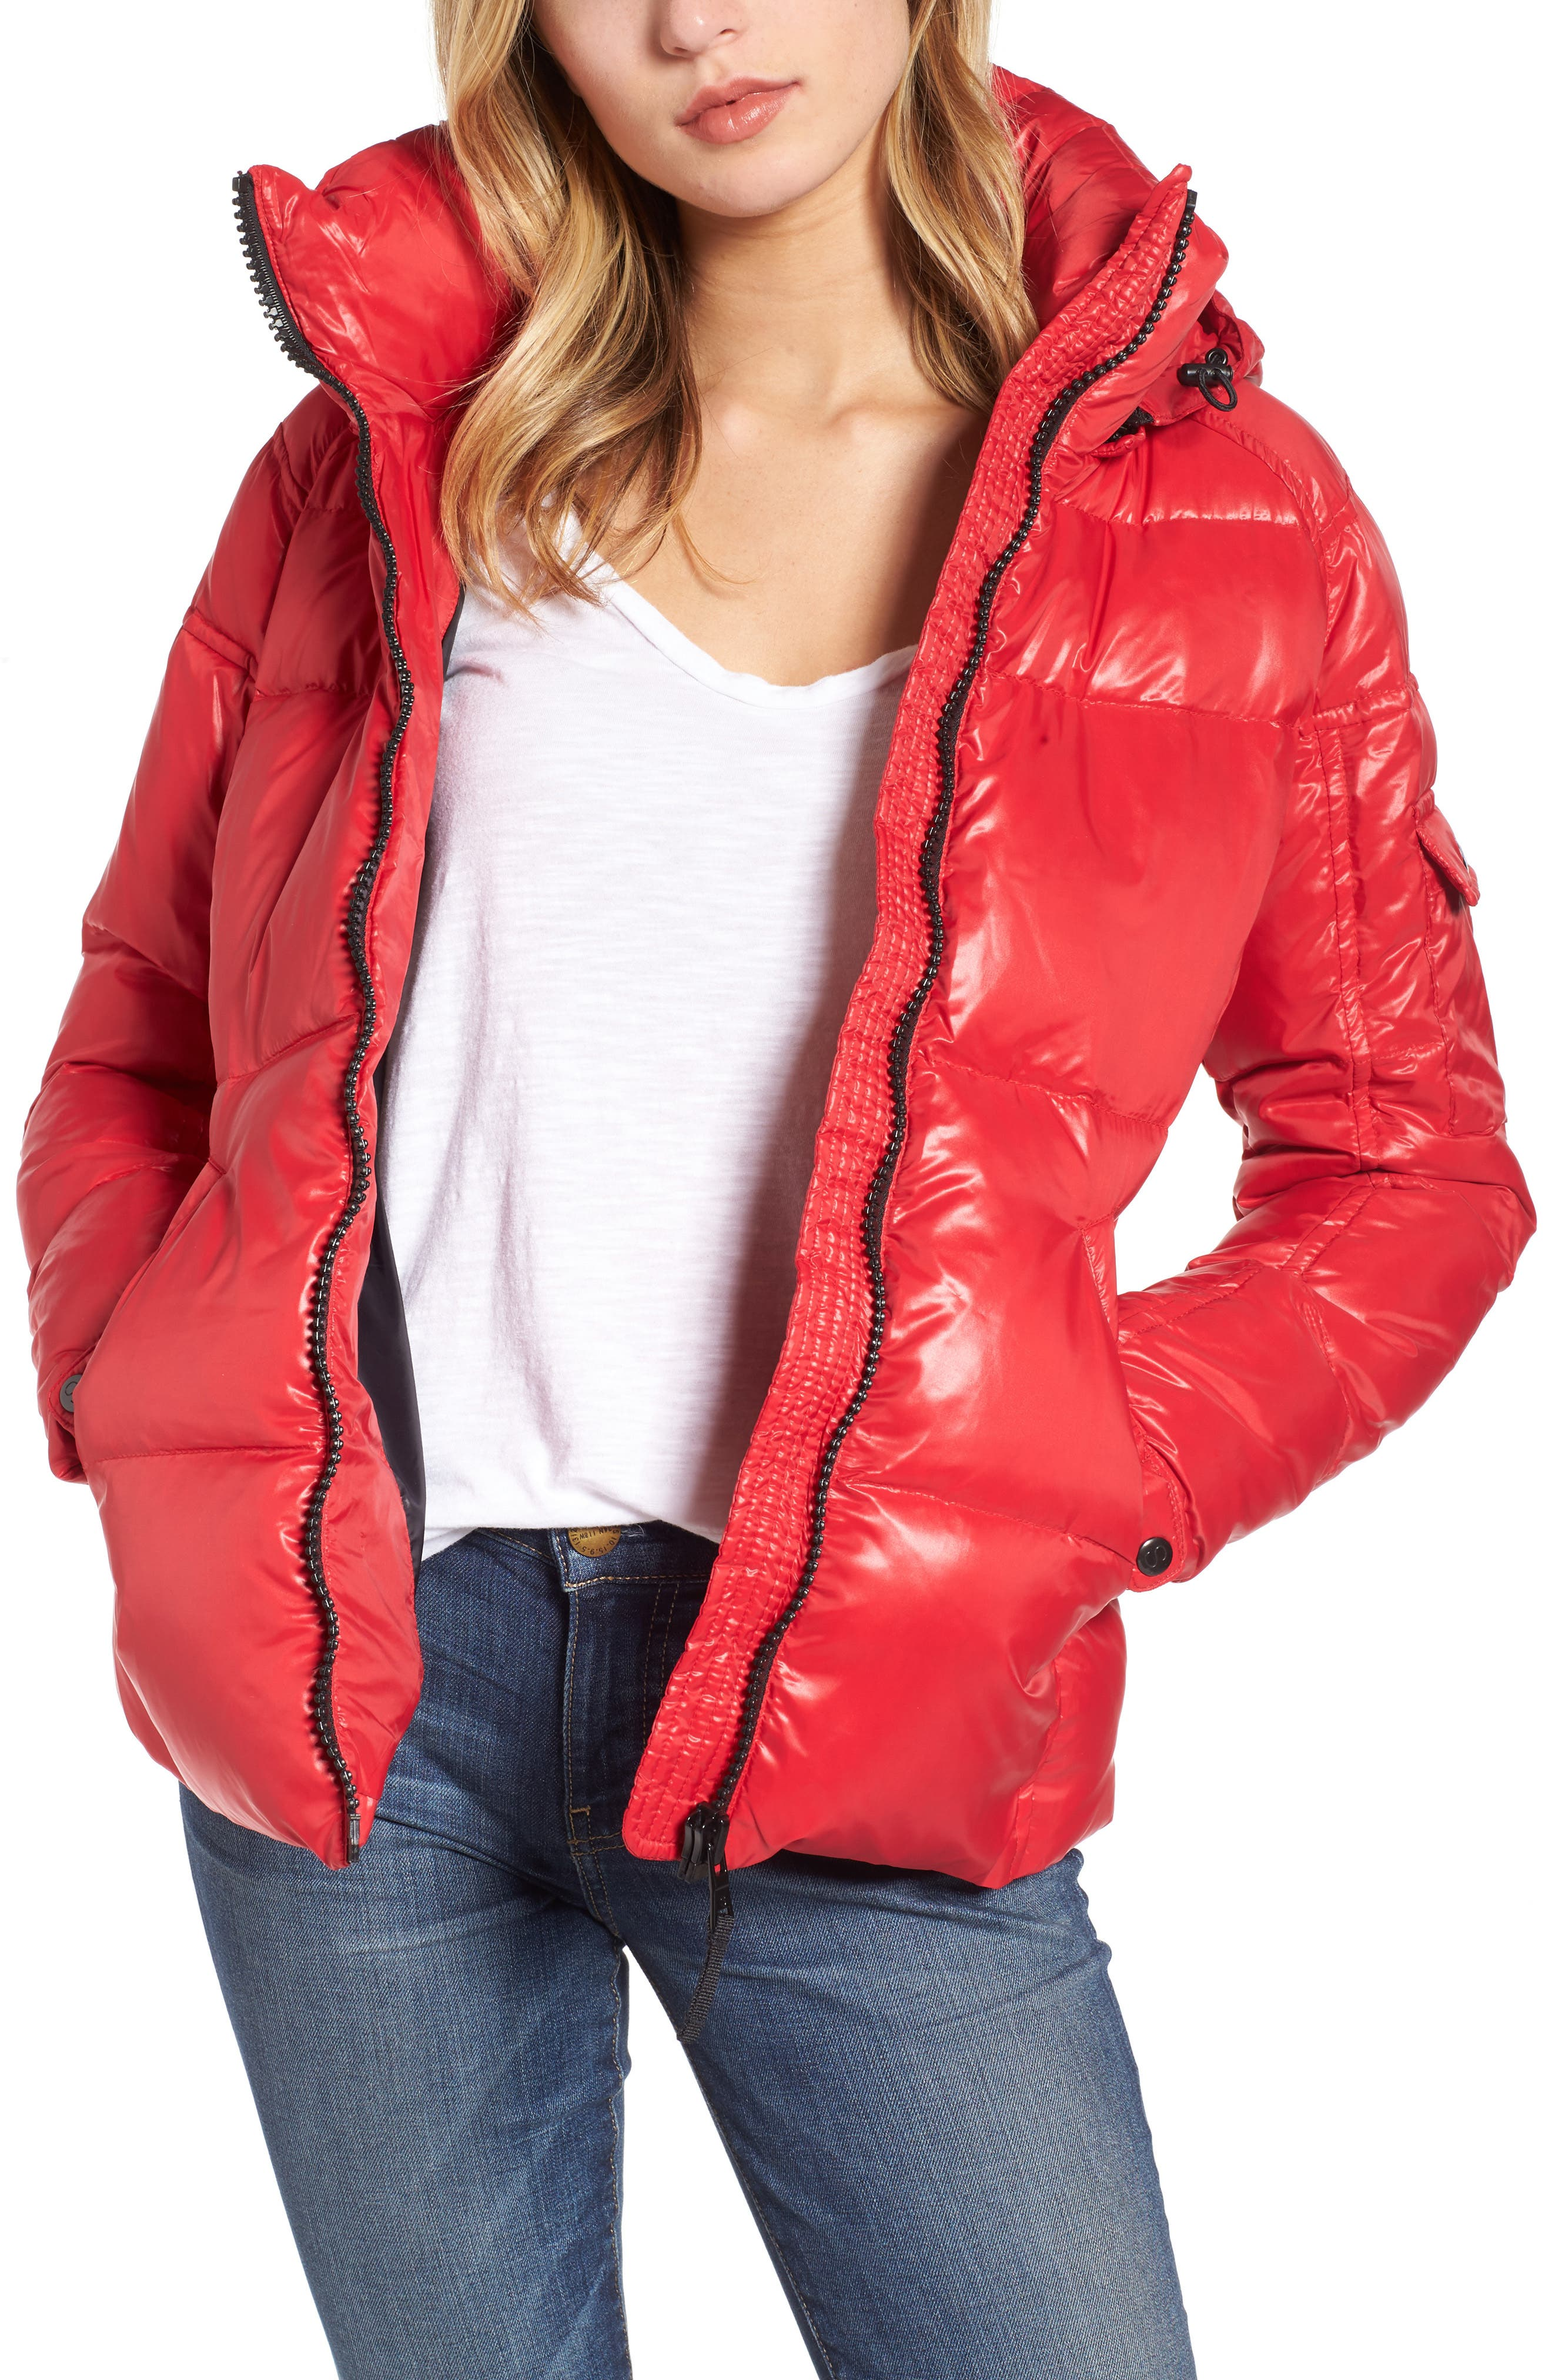 Main Image - S13 'Kylie' Metallic Quilted Jacket with Removable Hood